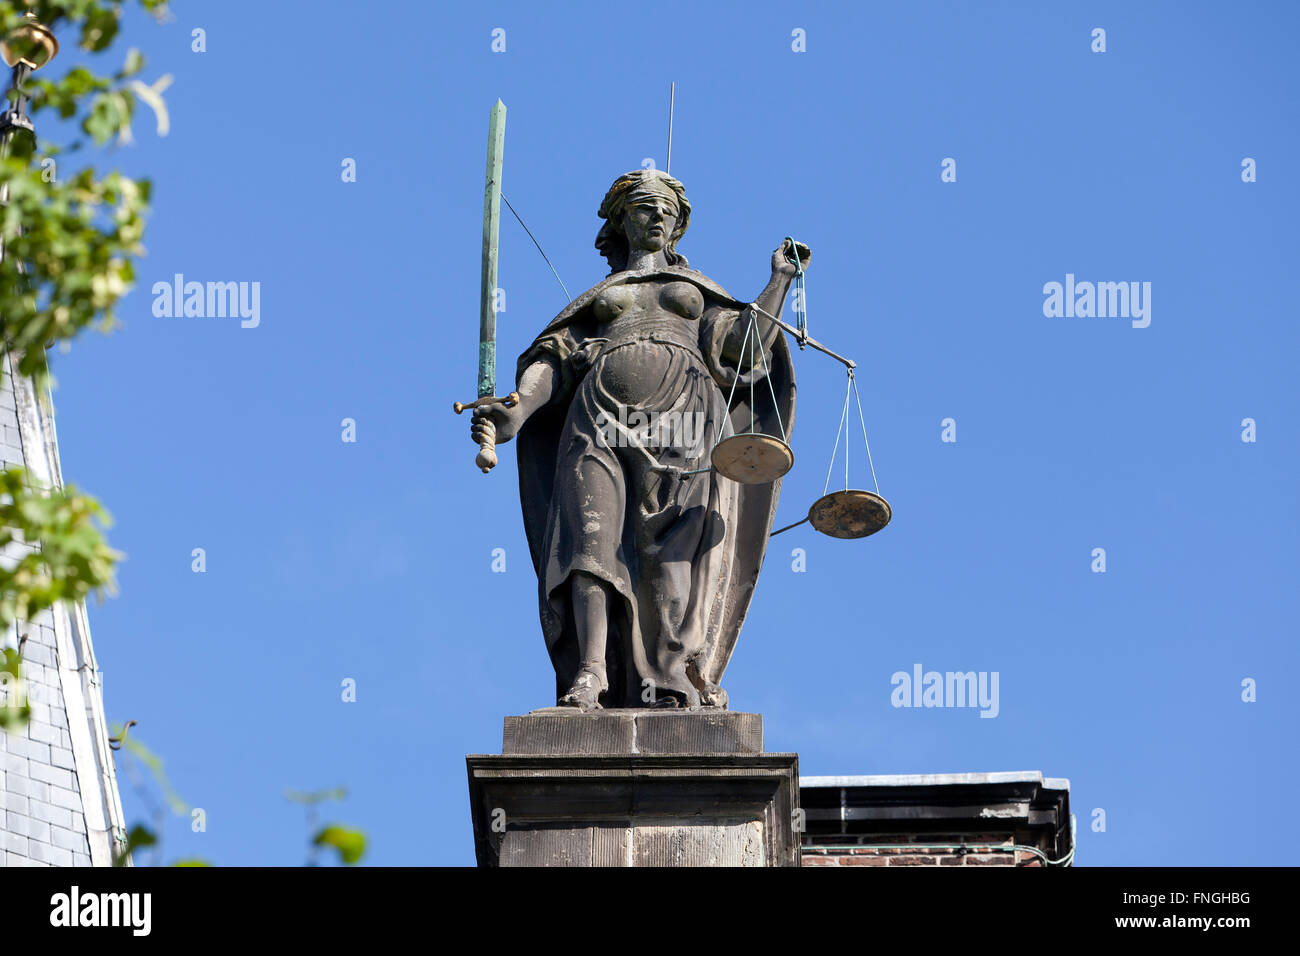 Old statue of Lady Justice on the Gravensteen in Leiden, Holland - Stock Image